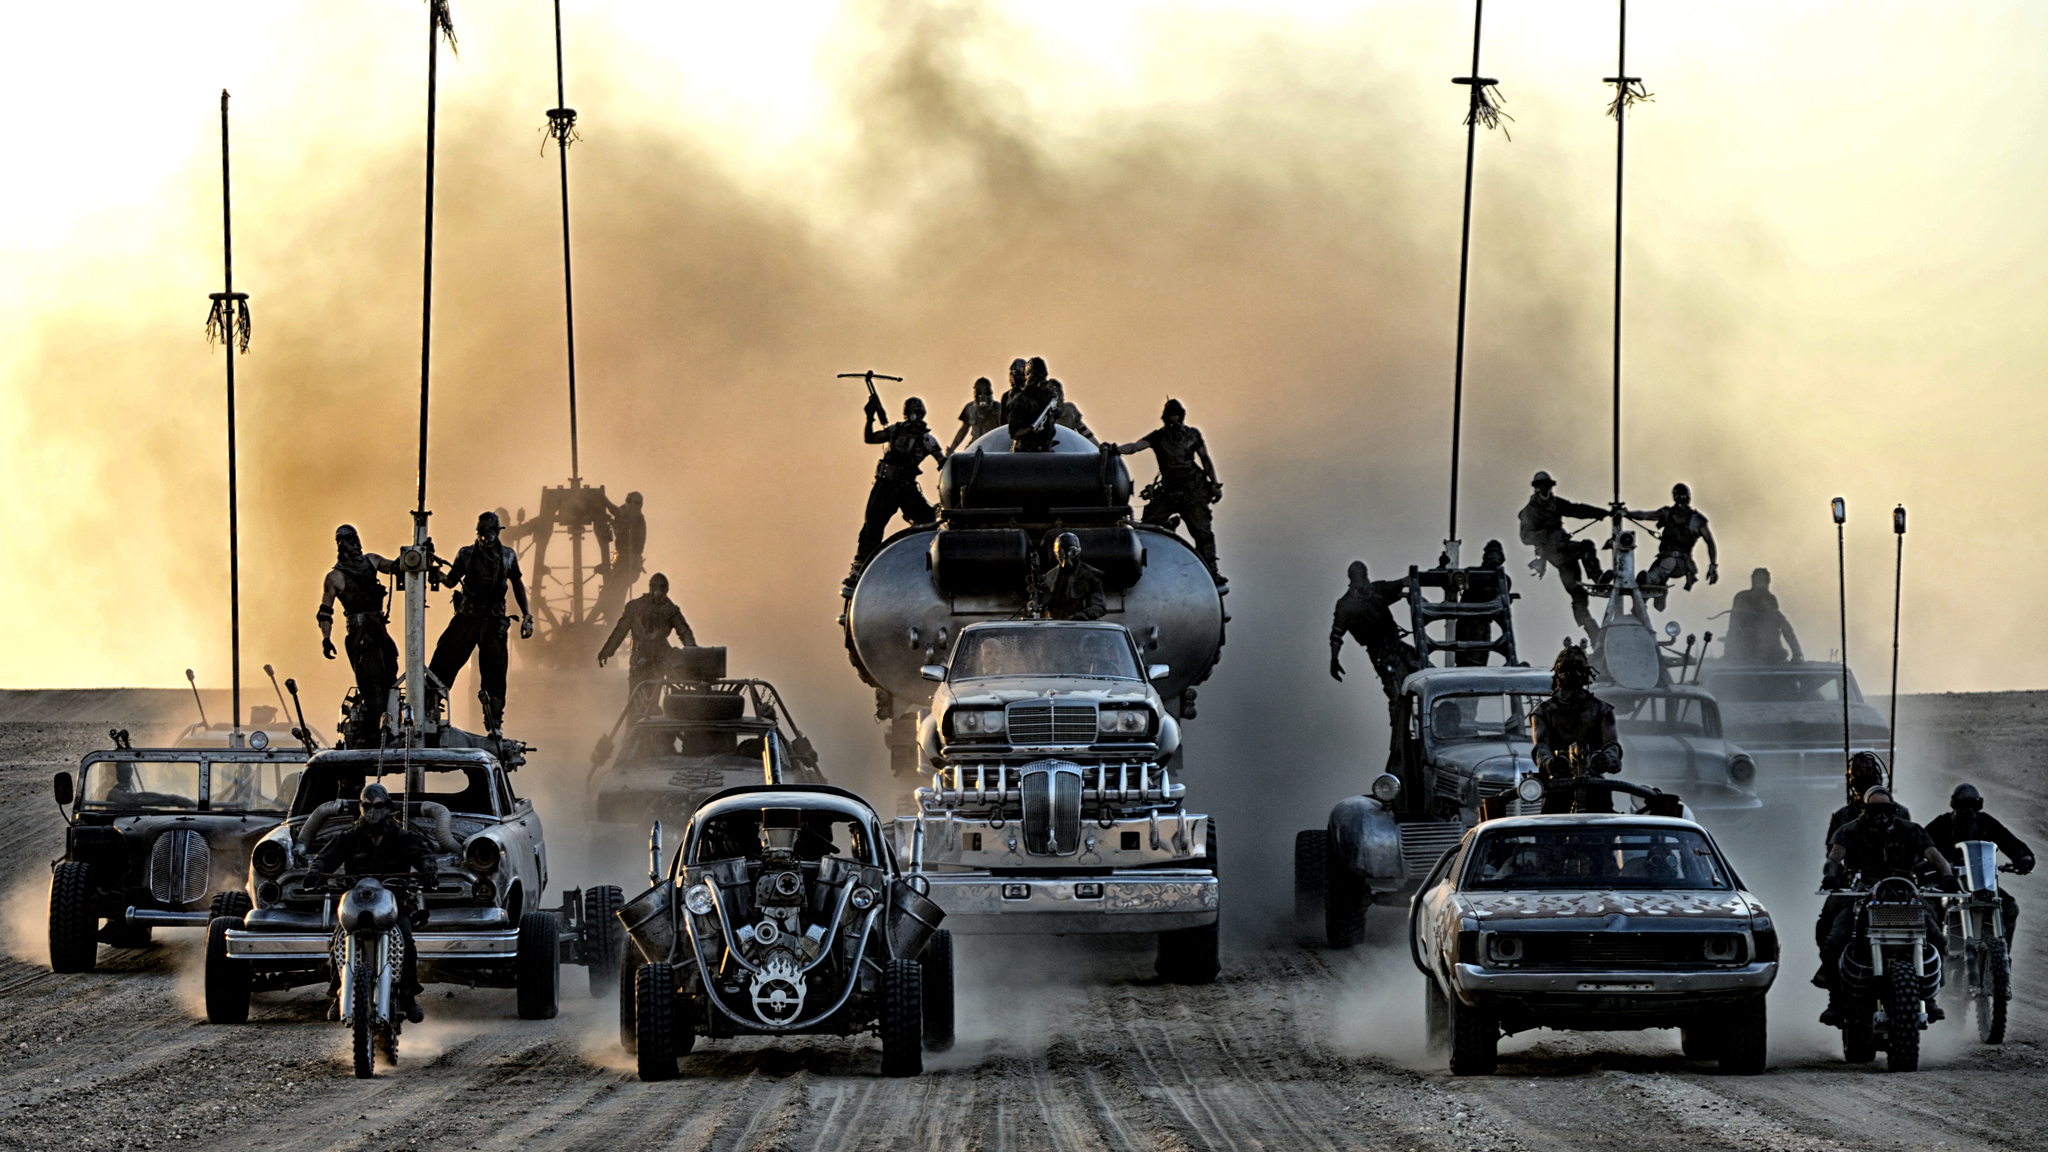 10 reasons we love 'Mad Max: Fury Road'